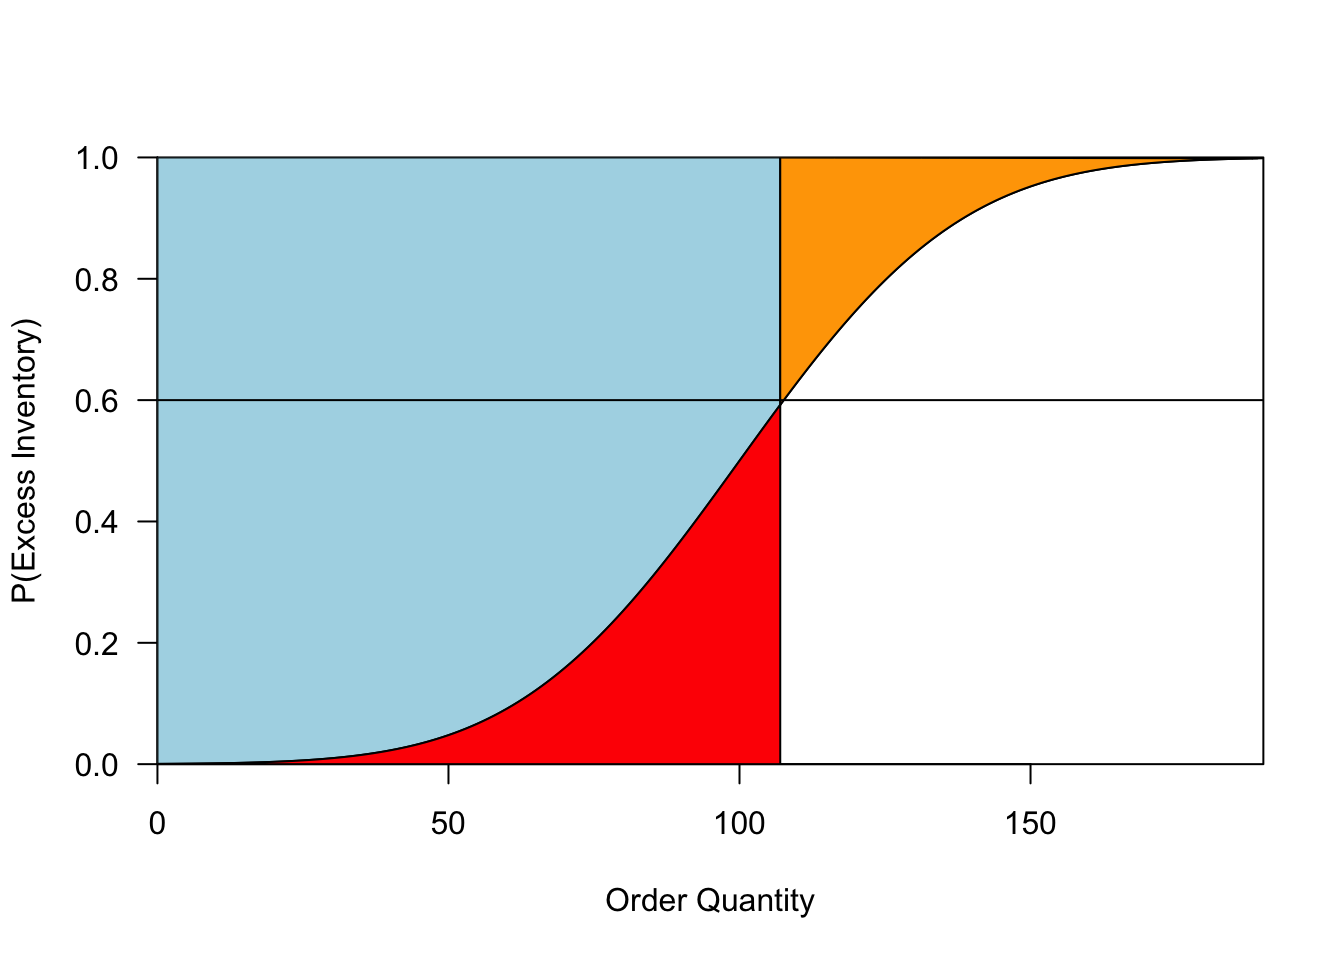 A visualization of the classical newsvendor problem. The curve represents the CDF of the demand distribution. The vertical line gives our order quantity. The blue region represents expected sales, and the red and orange regions represent expected overage and underage, respectively. The horizontal line shows our critical ratio: the optimal order quantity is where this line intersects the demand distribution.